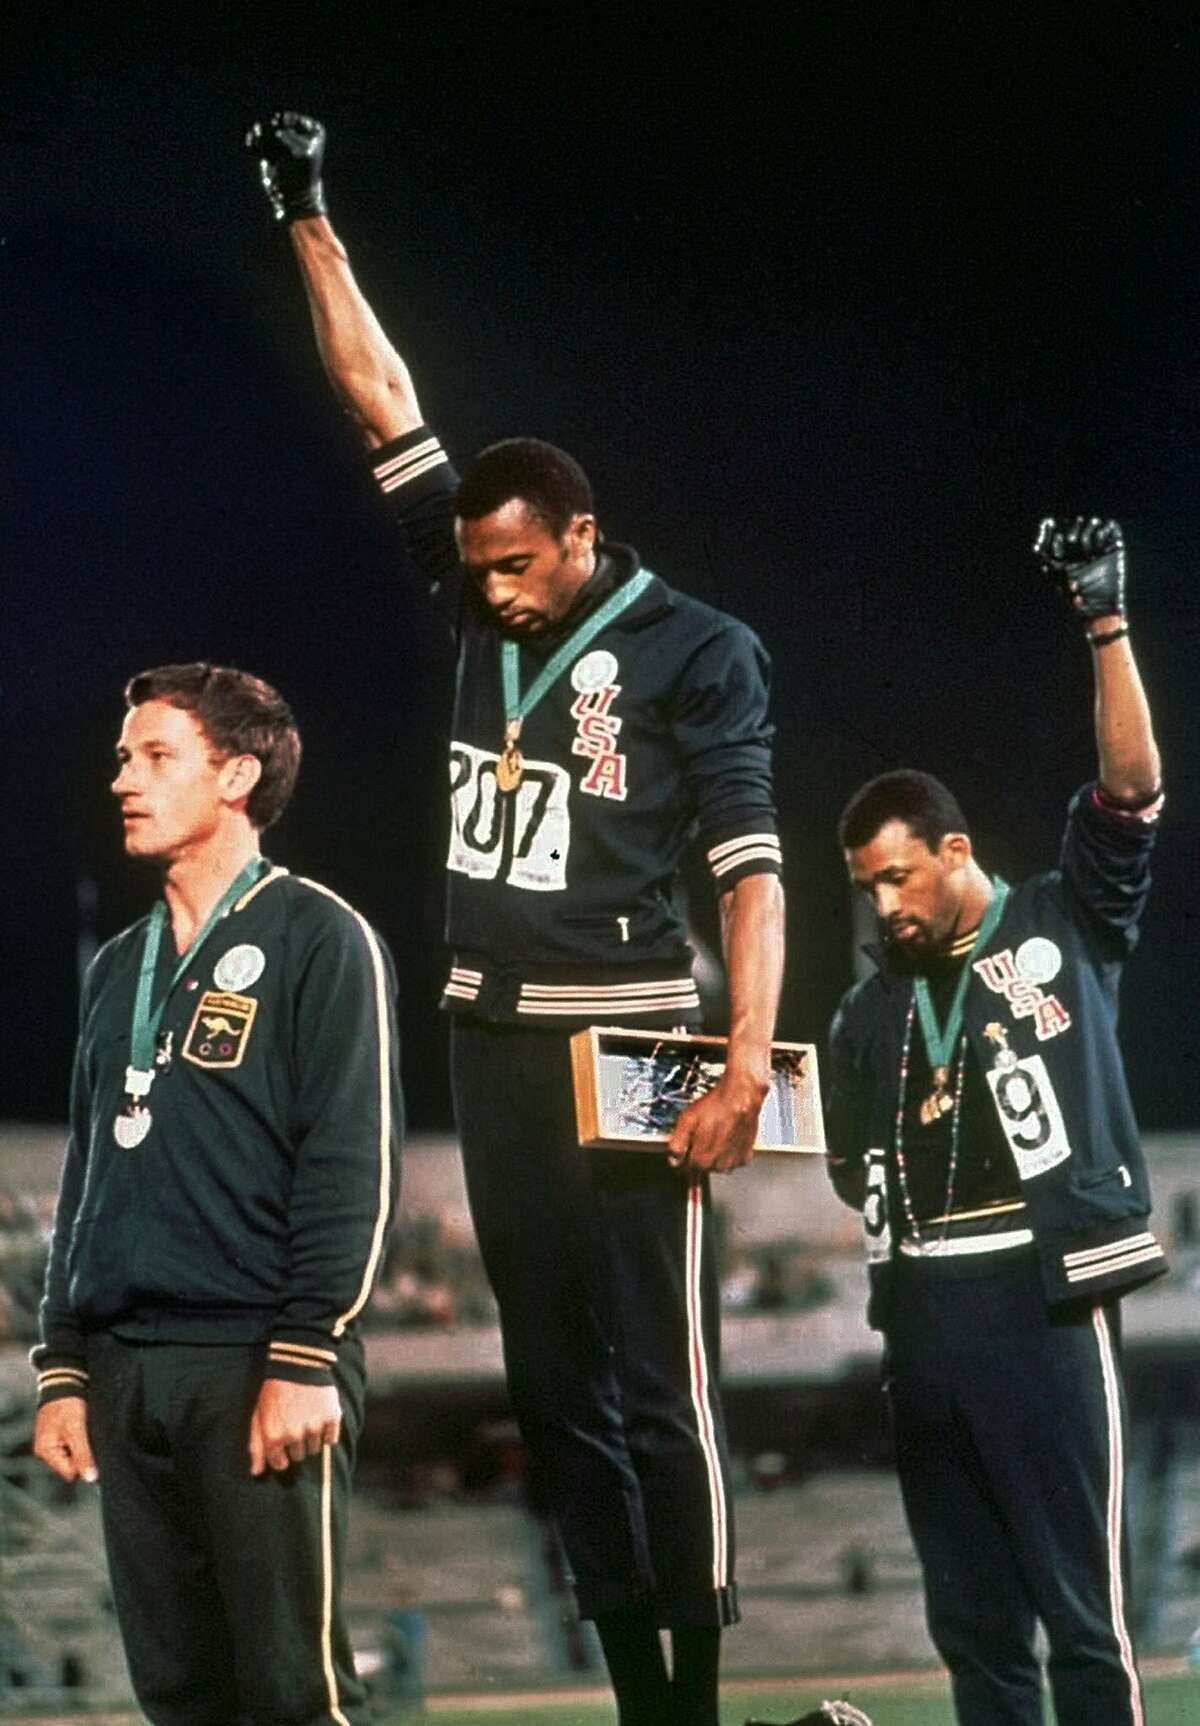 FILE - In this Oct. 16, 1968, file photo, U.S. athletes Tommie Smith, center, and John Carlos stare downward and extend gloved hands skyward in a Black power salute after Smith received the gold and Carlos the bronze for the 200 meter run at the Summer Olympic Games in Mexico City. Australian silver medalist Peter Norman is at left. Tommie Smith and John Carlos are part of the 2019 U.S. Olympic and Paralympic Hall of Fame class that will be inducted later this year.(AP Photo, File)